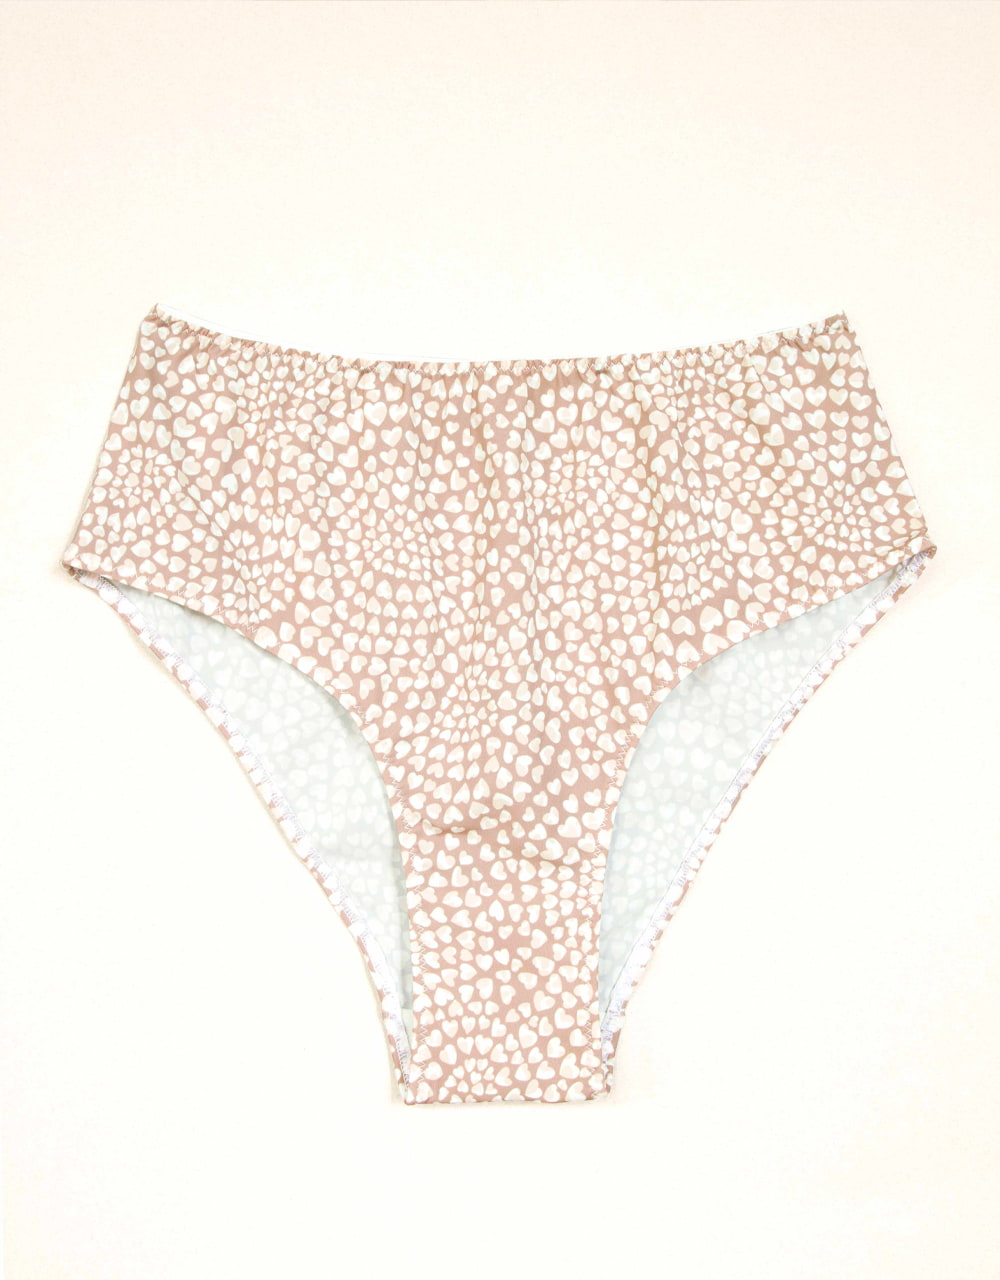 lingerie culotte taille haute wild at heart Earlybird Wild at Heart 24 € Girls In Paris photo 5